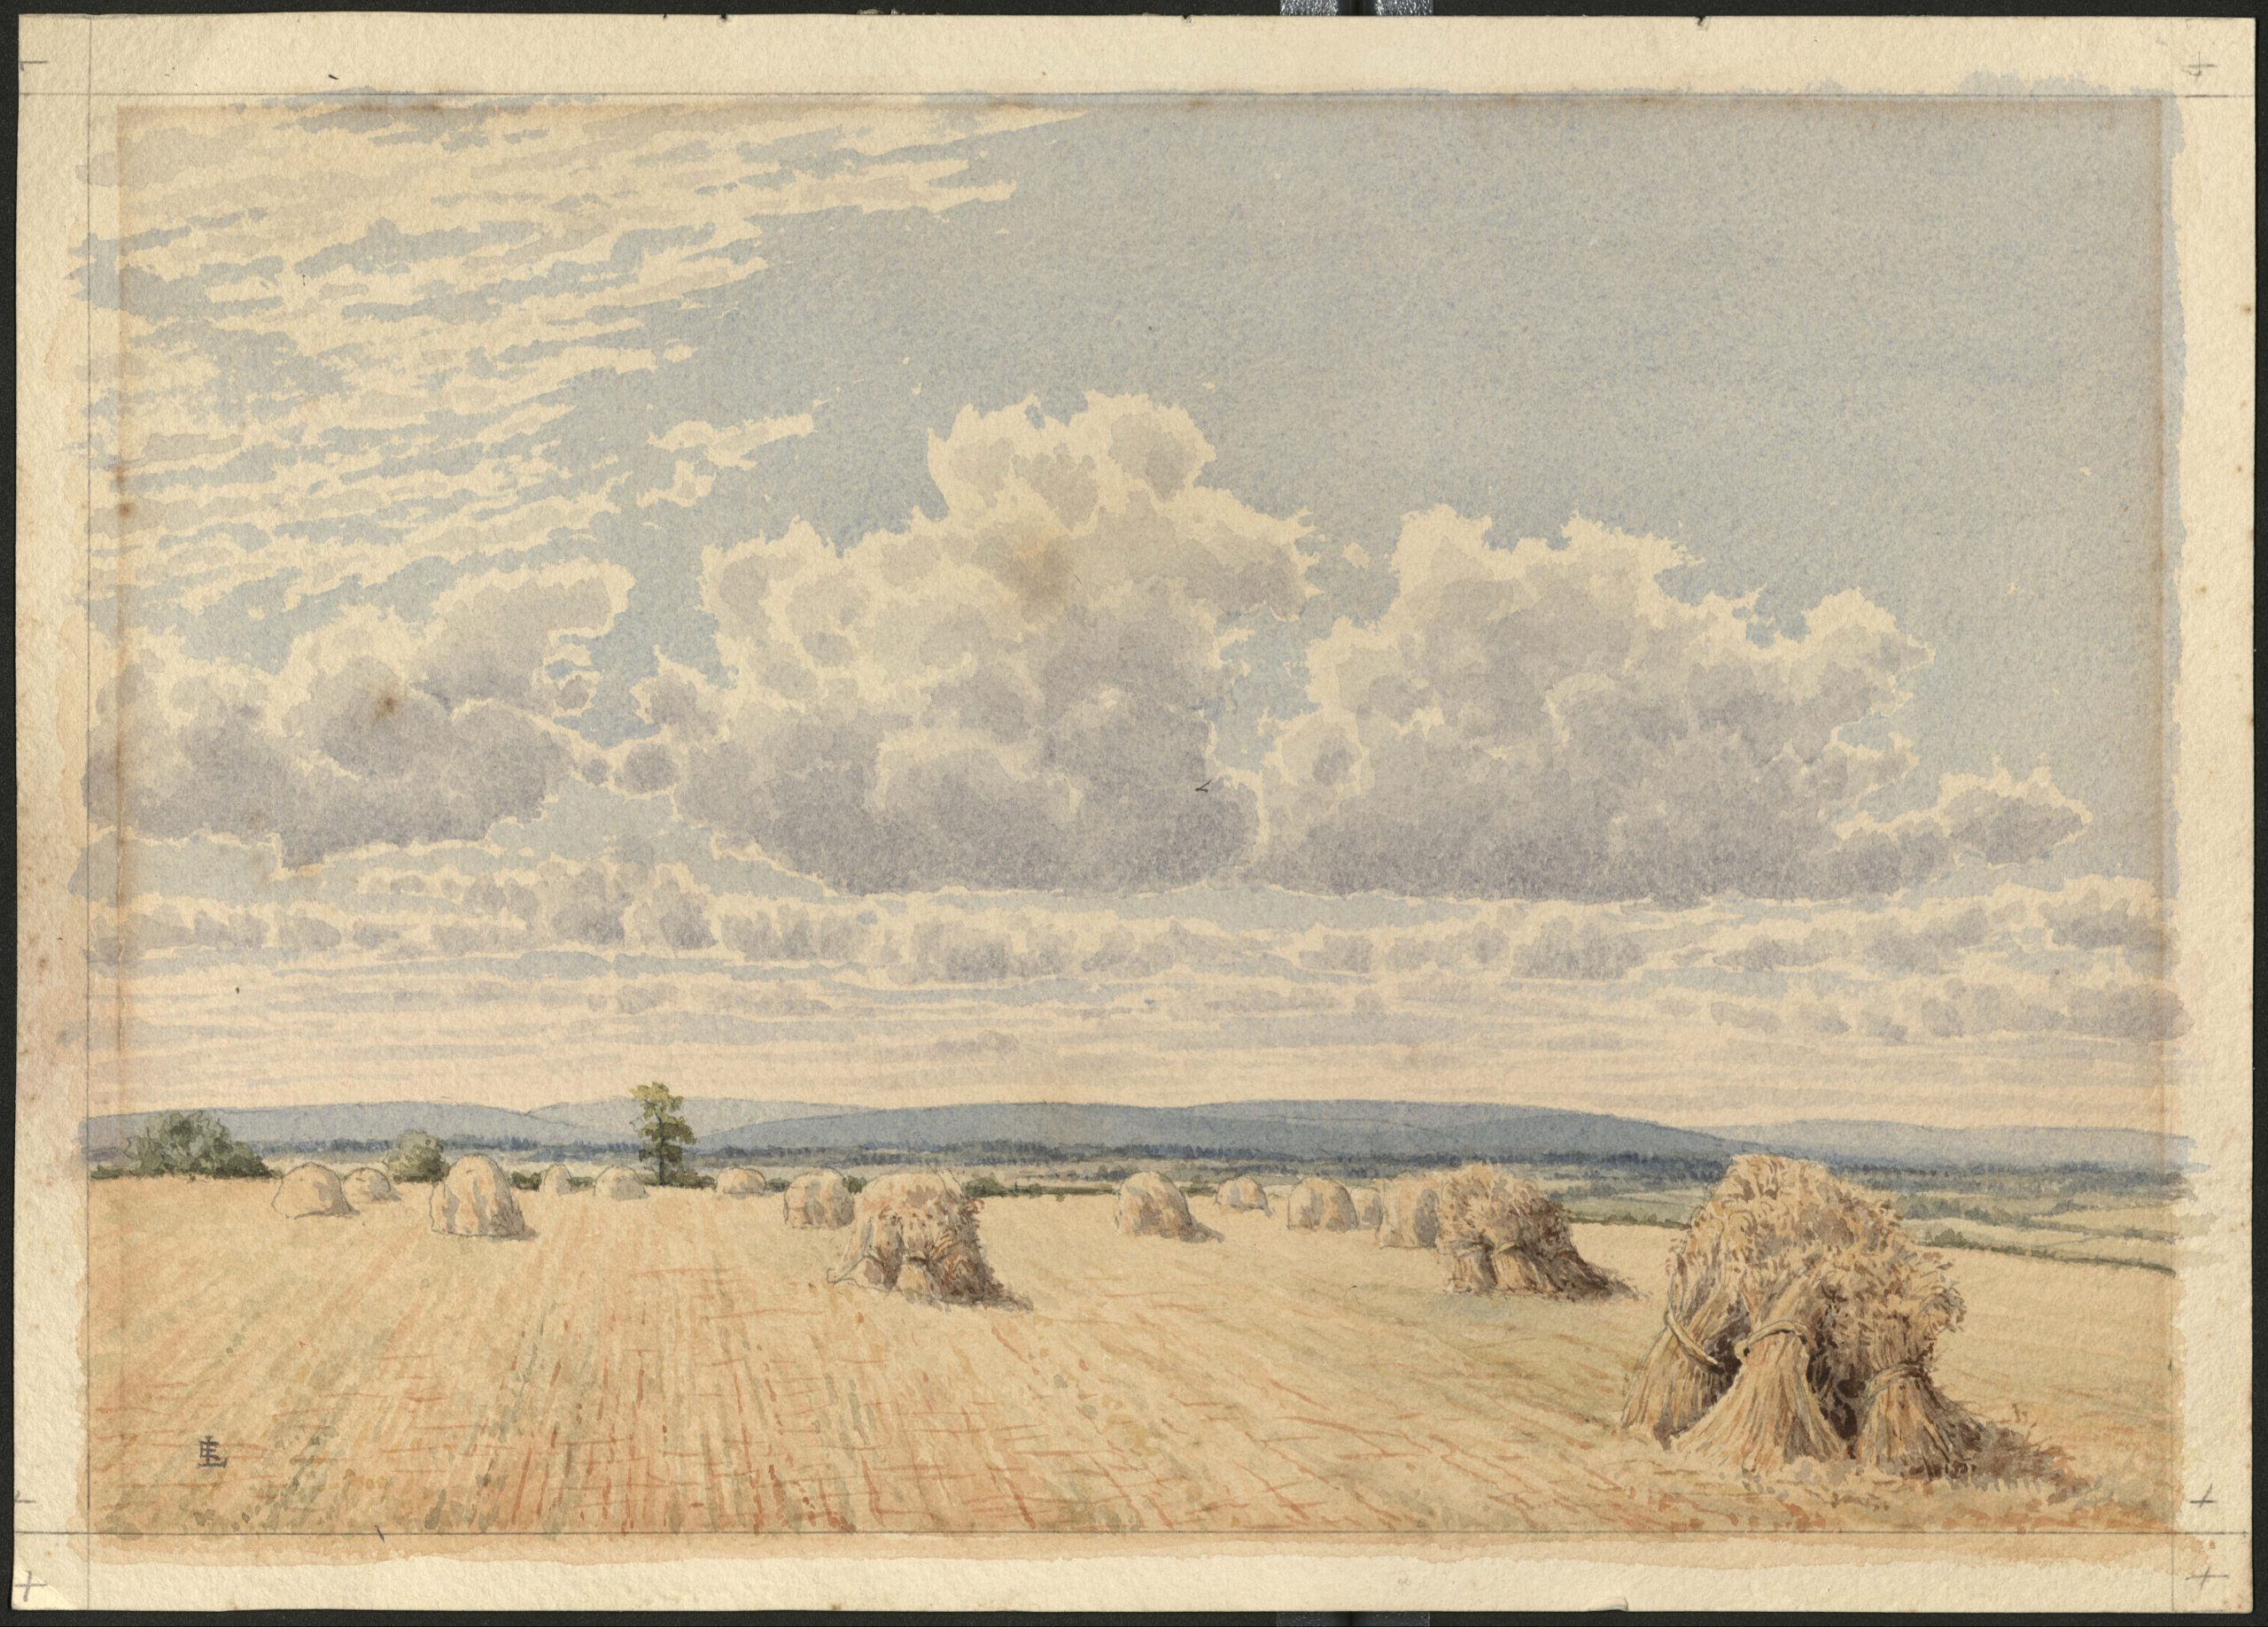 This image depicts a landscape watercolor painting of a harvested field, filled with bales of hay, or haystacks. Clouds are depicted prominently in the top portion of the painting, and a mountain range is visible in the far distance.